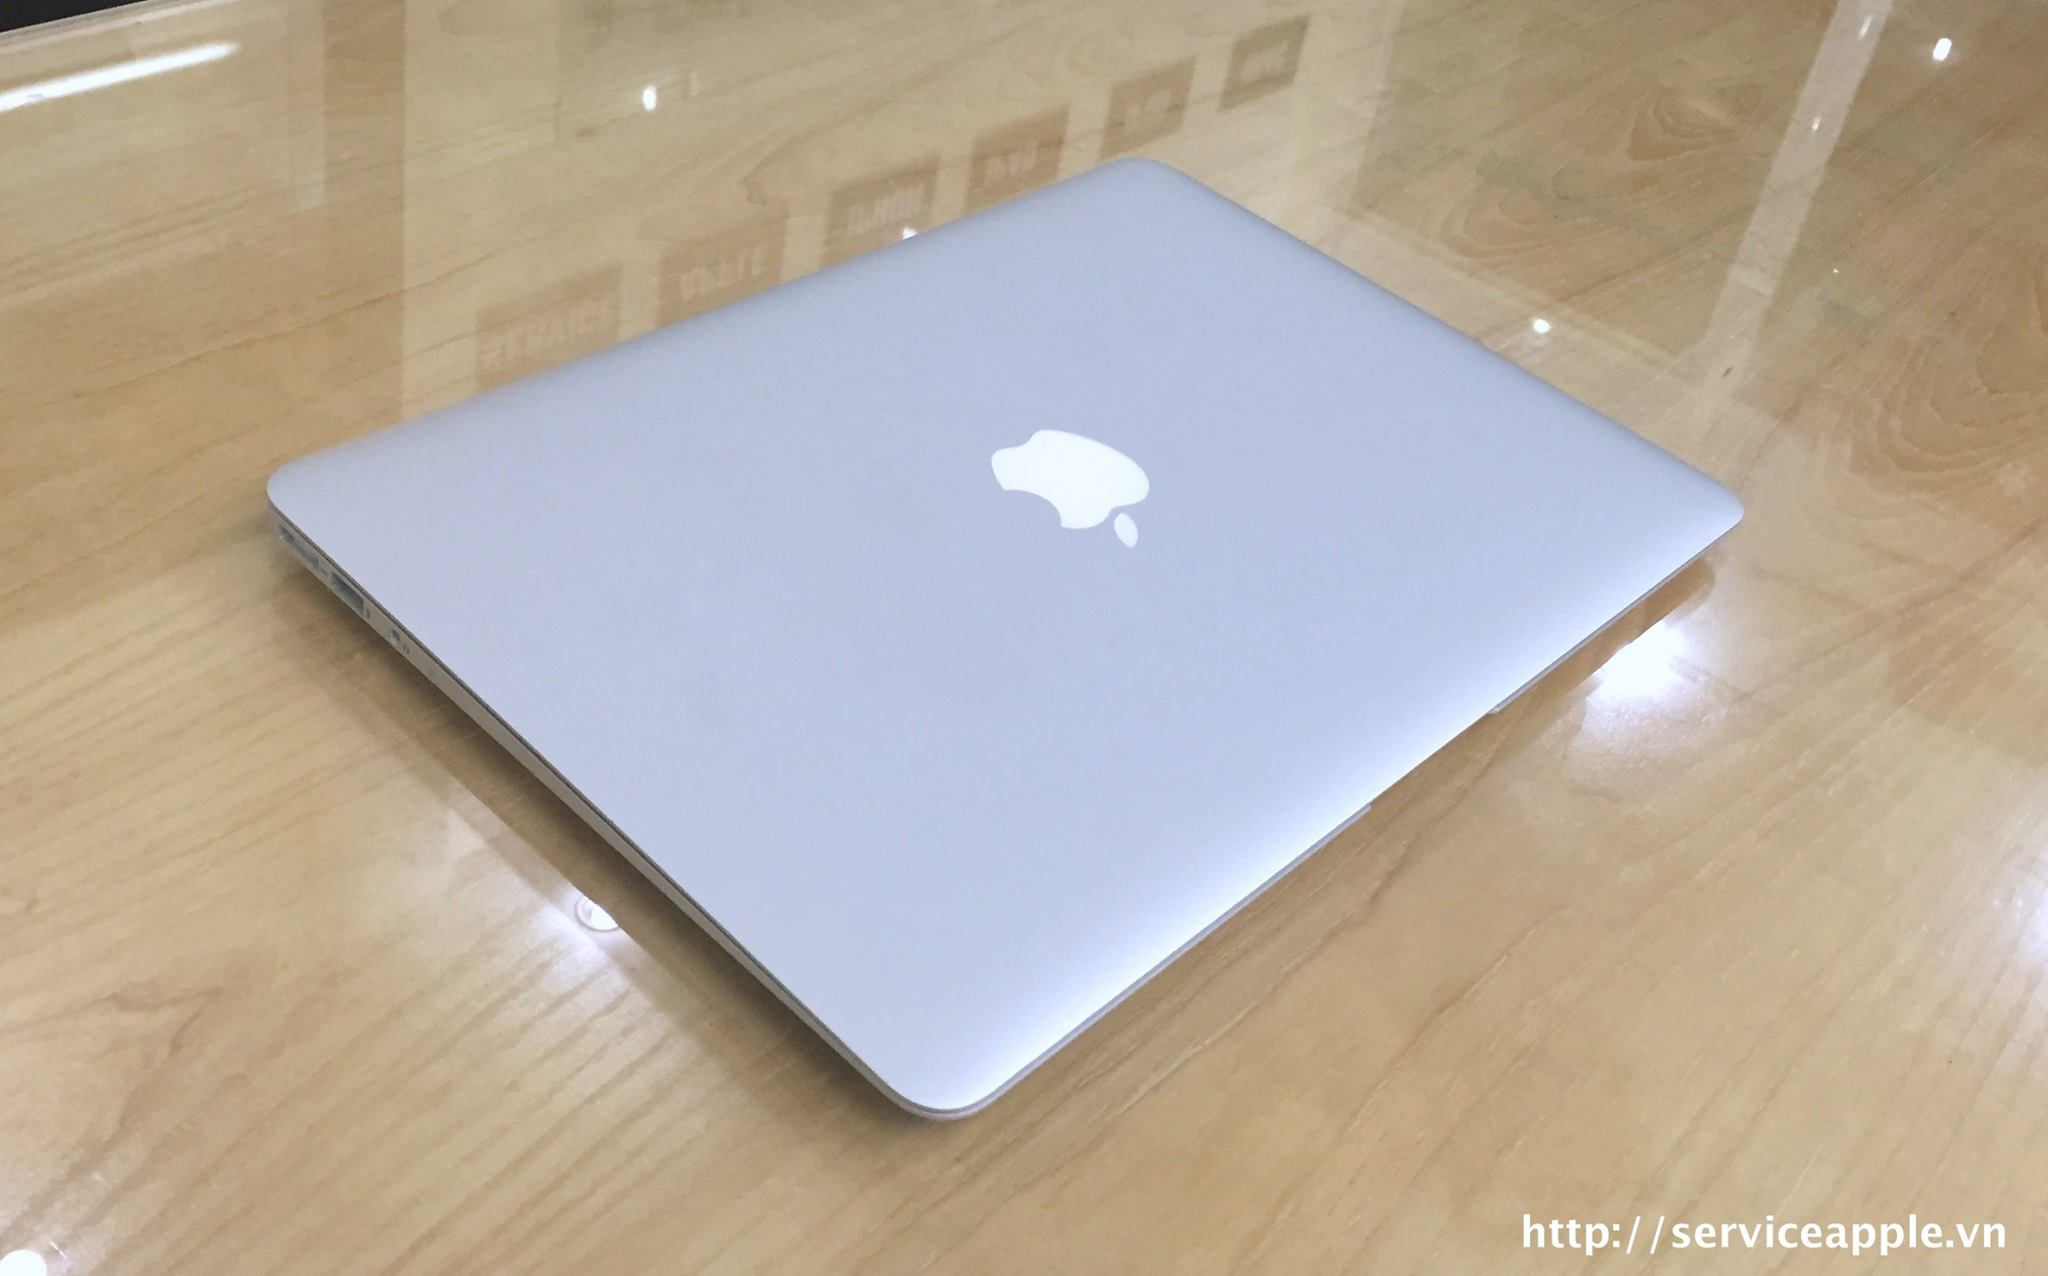 Macbook Air MD322 Full Option i7 2,0Ghz, 8GB Ram, SSD 512GB_2.jpg